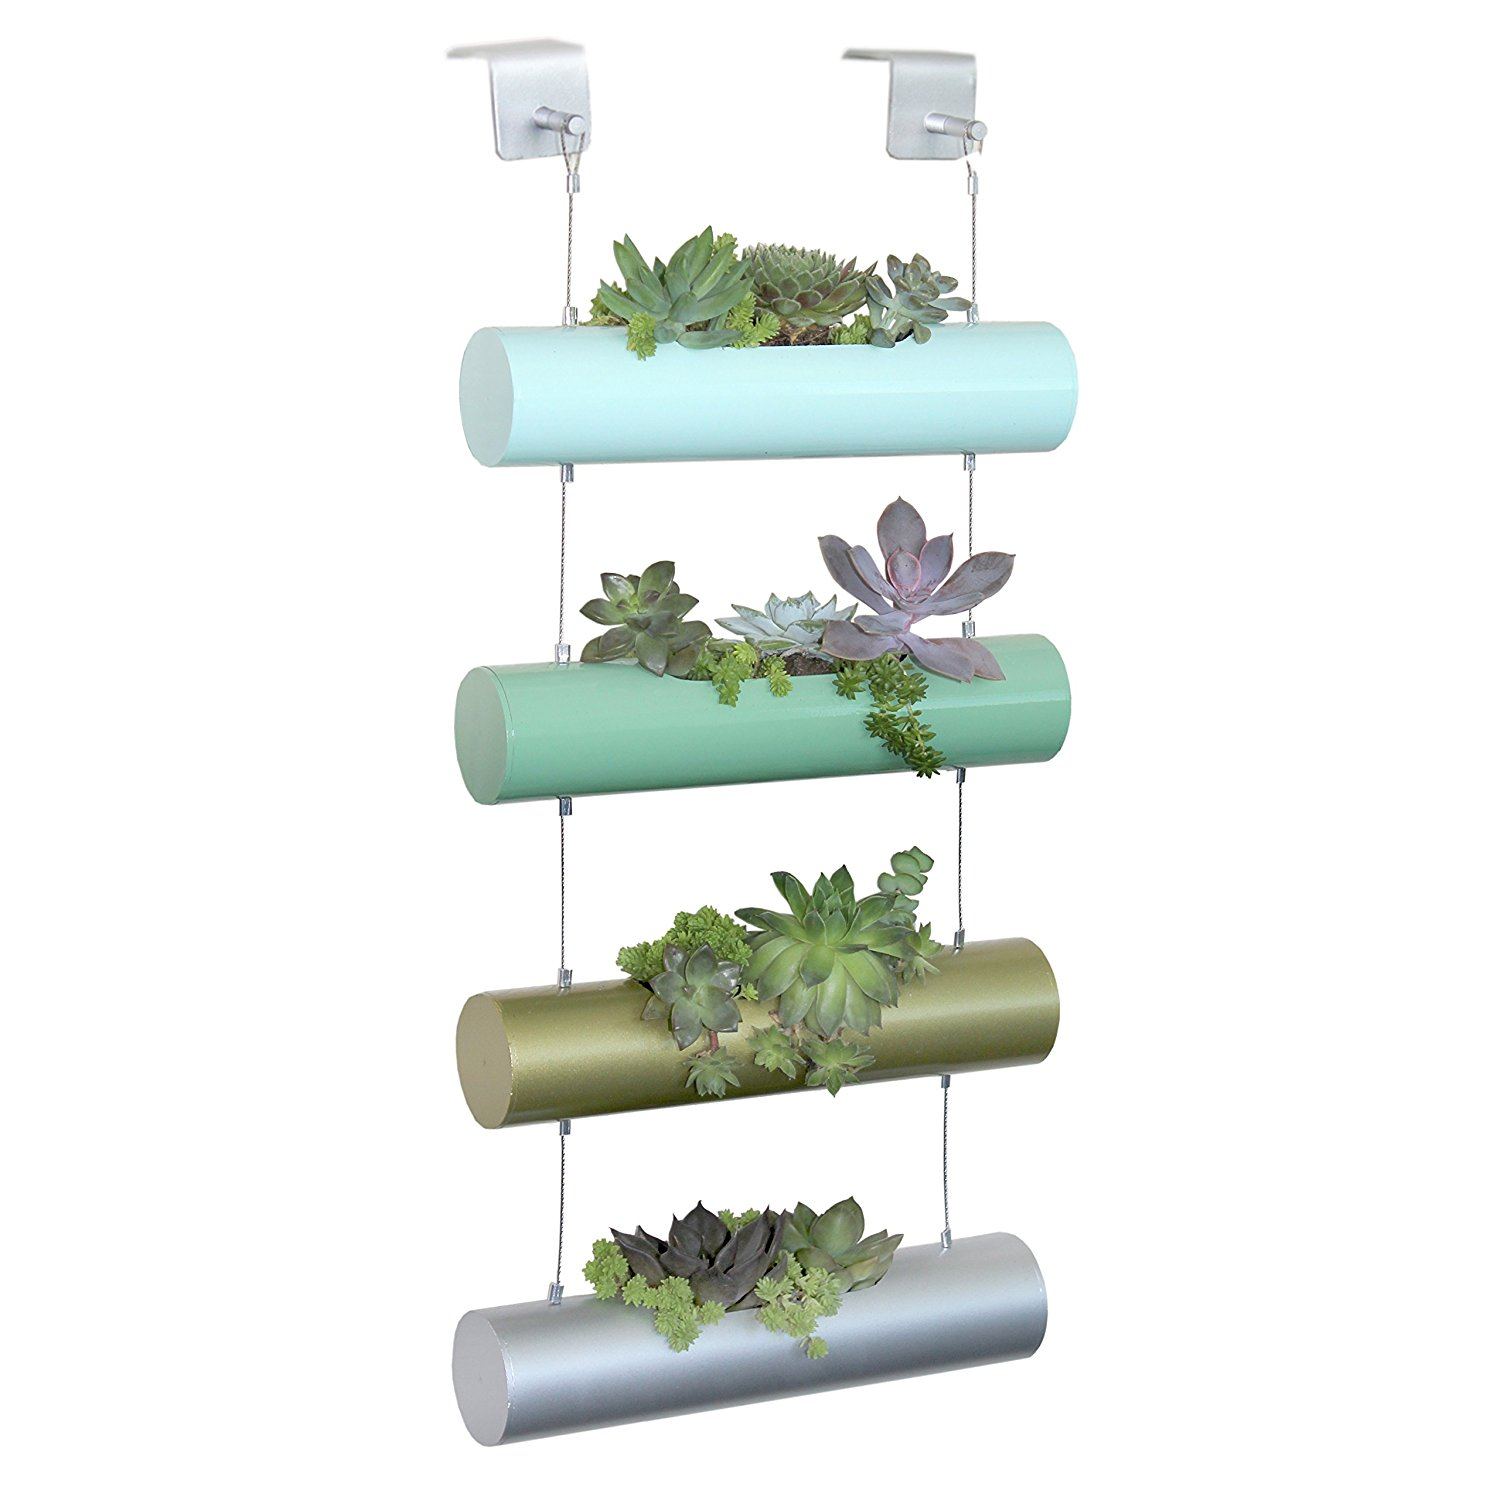 Four Season Vertical Zen Micro Garden Planter, $11 @amazon.com